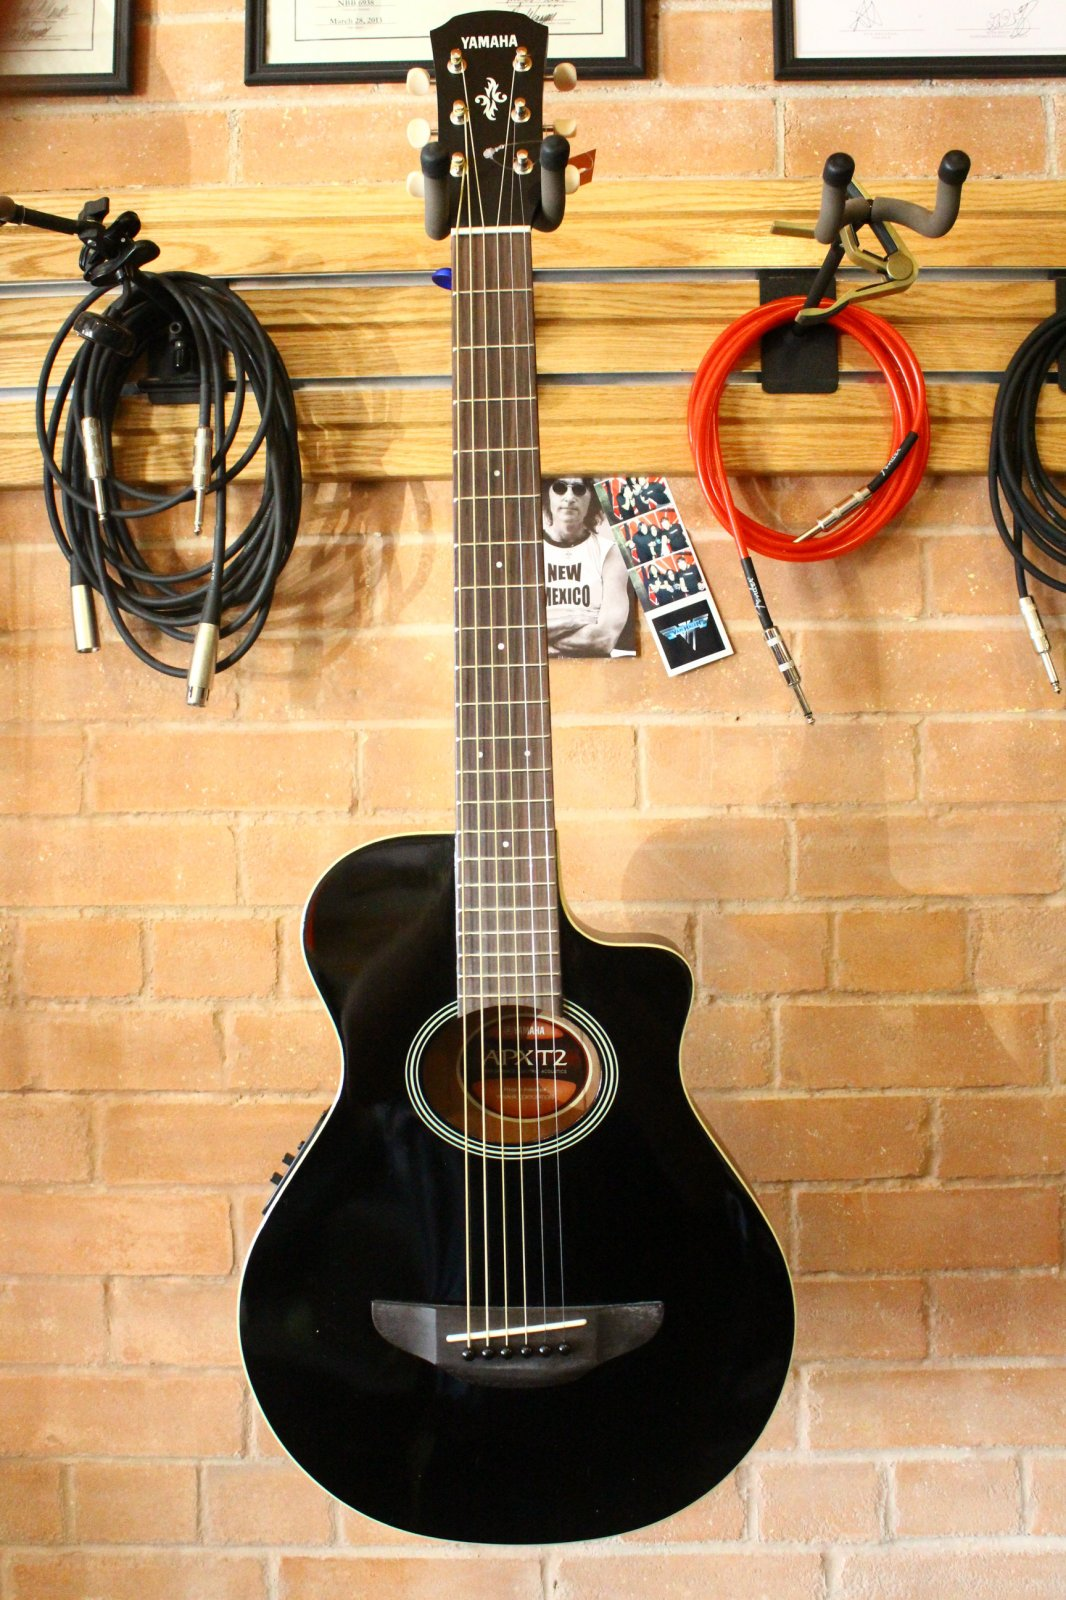 Yamaha APXT2 Dark Red Burst with Gig Bag. $199.99. Check It Out